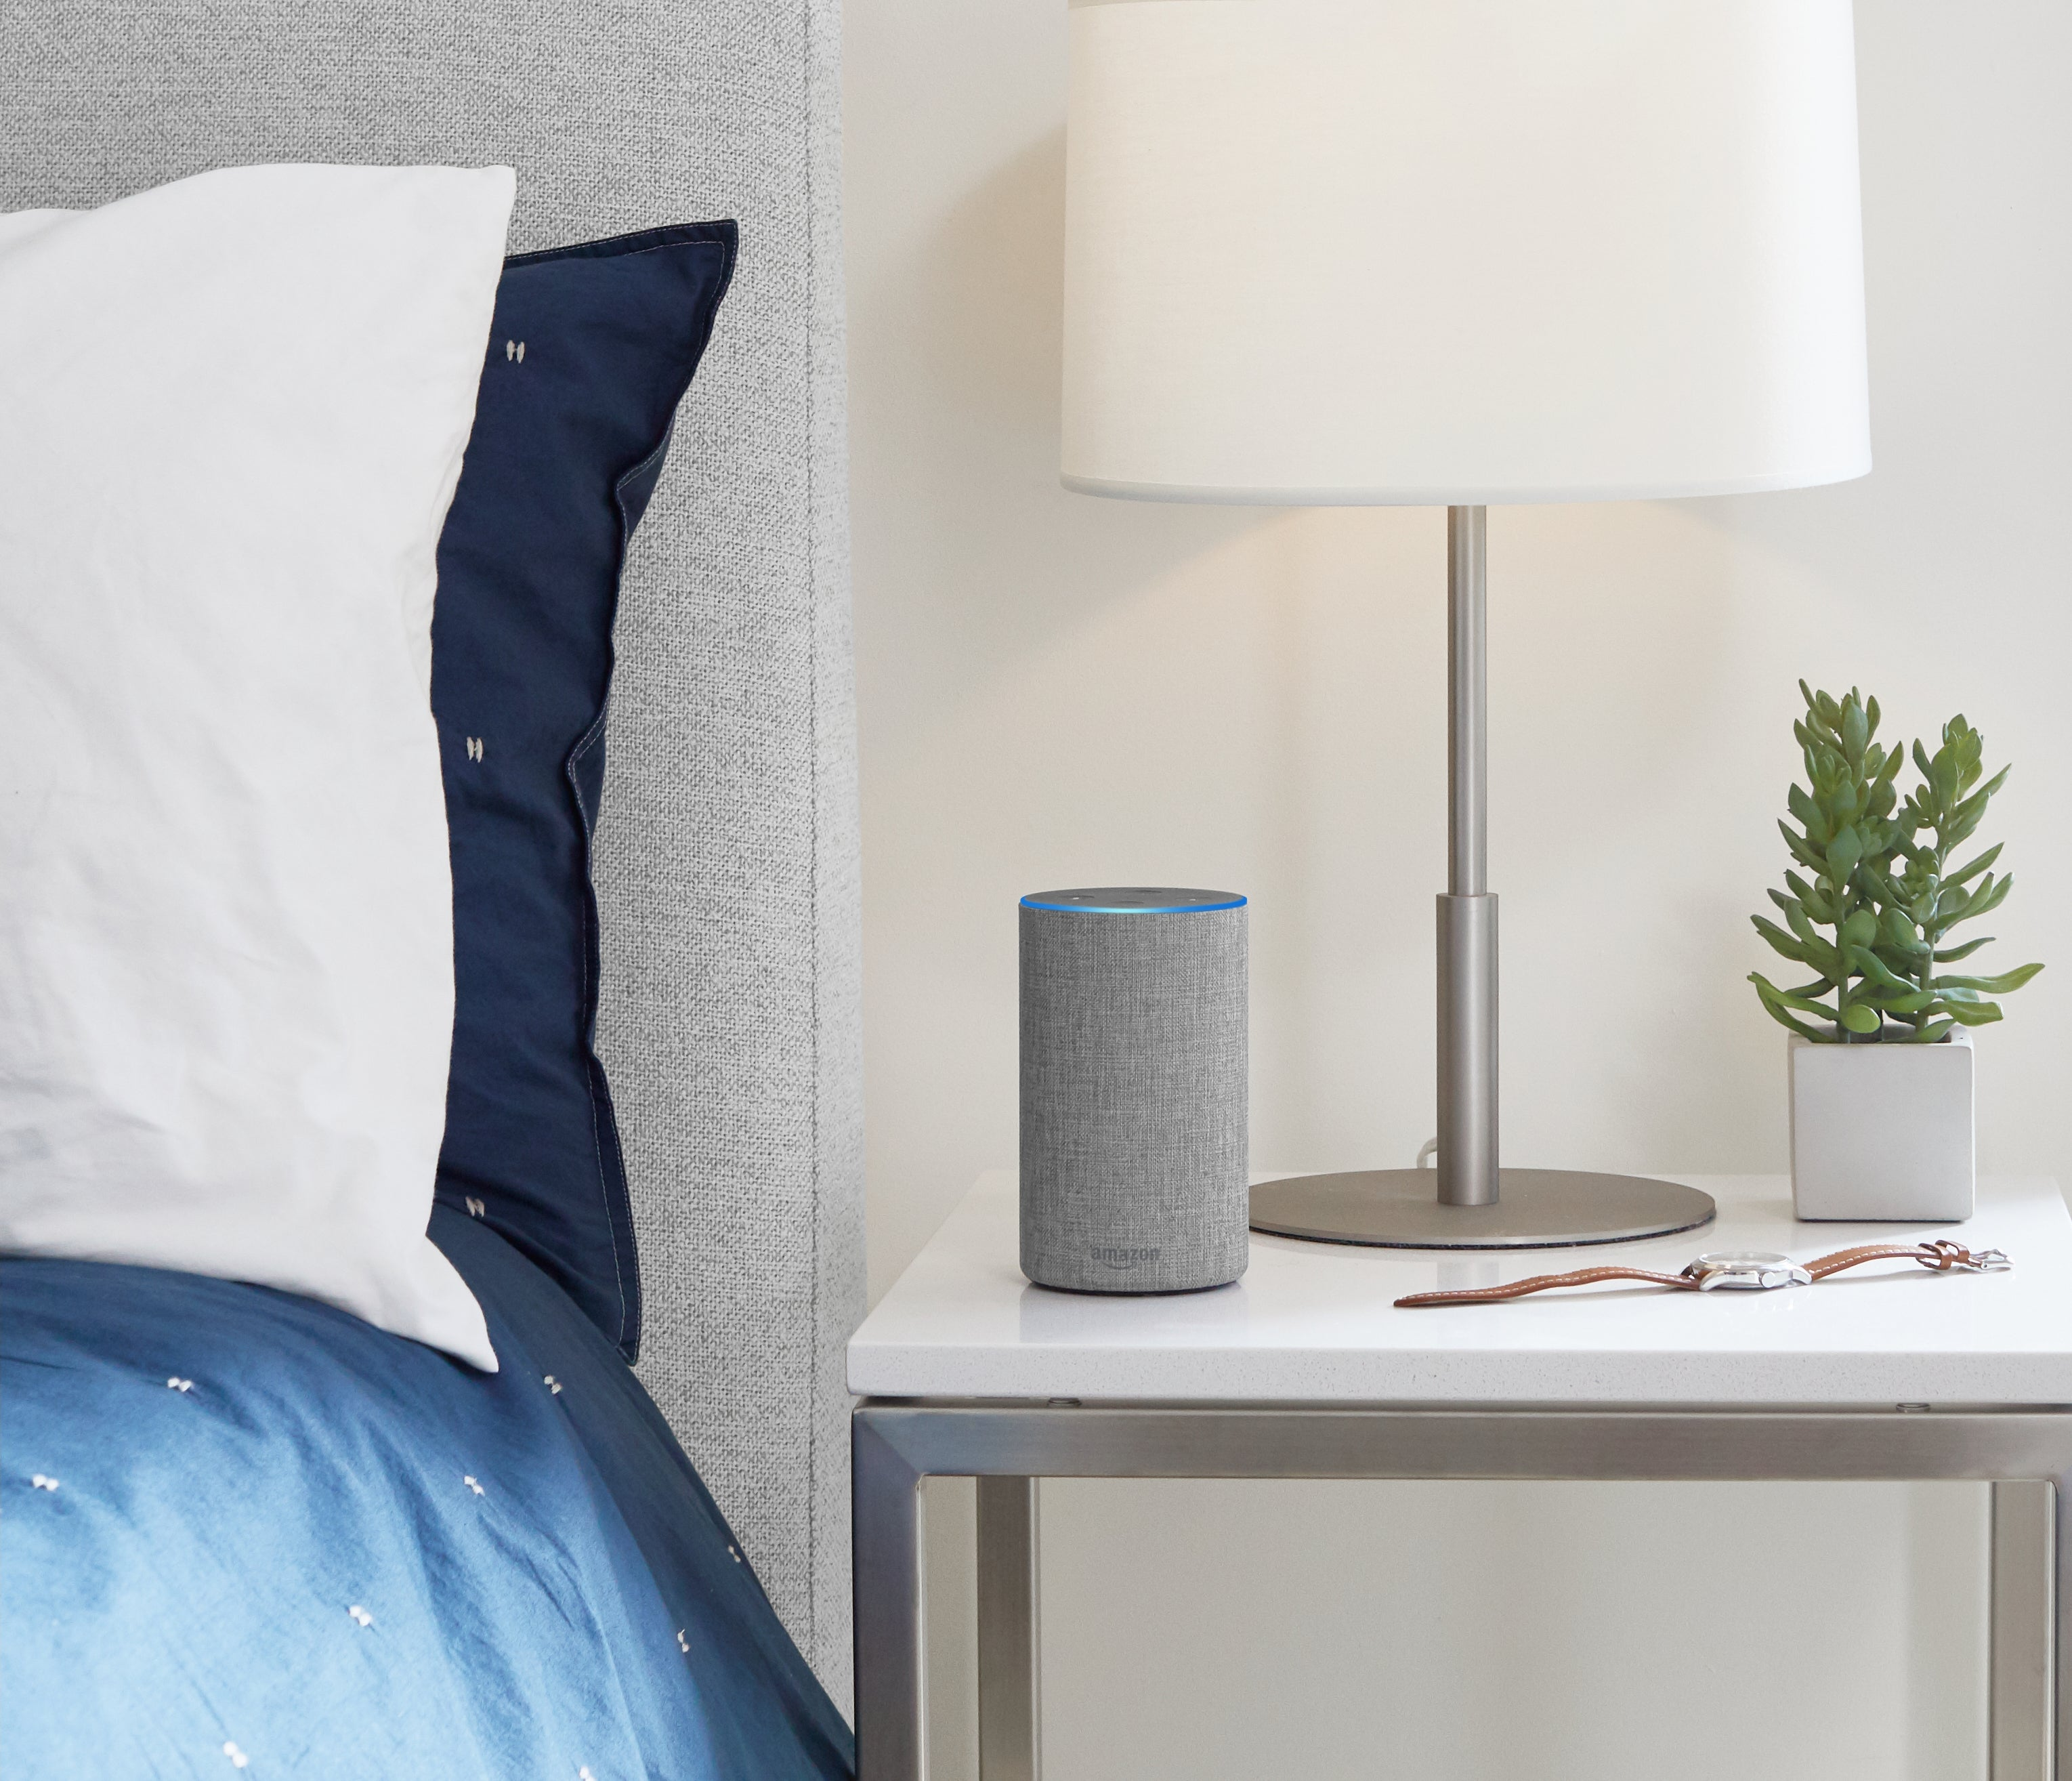 A gray Amazon Echo sitting on a bedside table with a lamp, plant, and watch nearby.